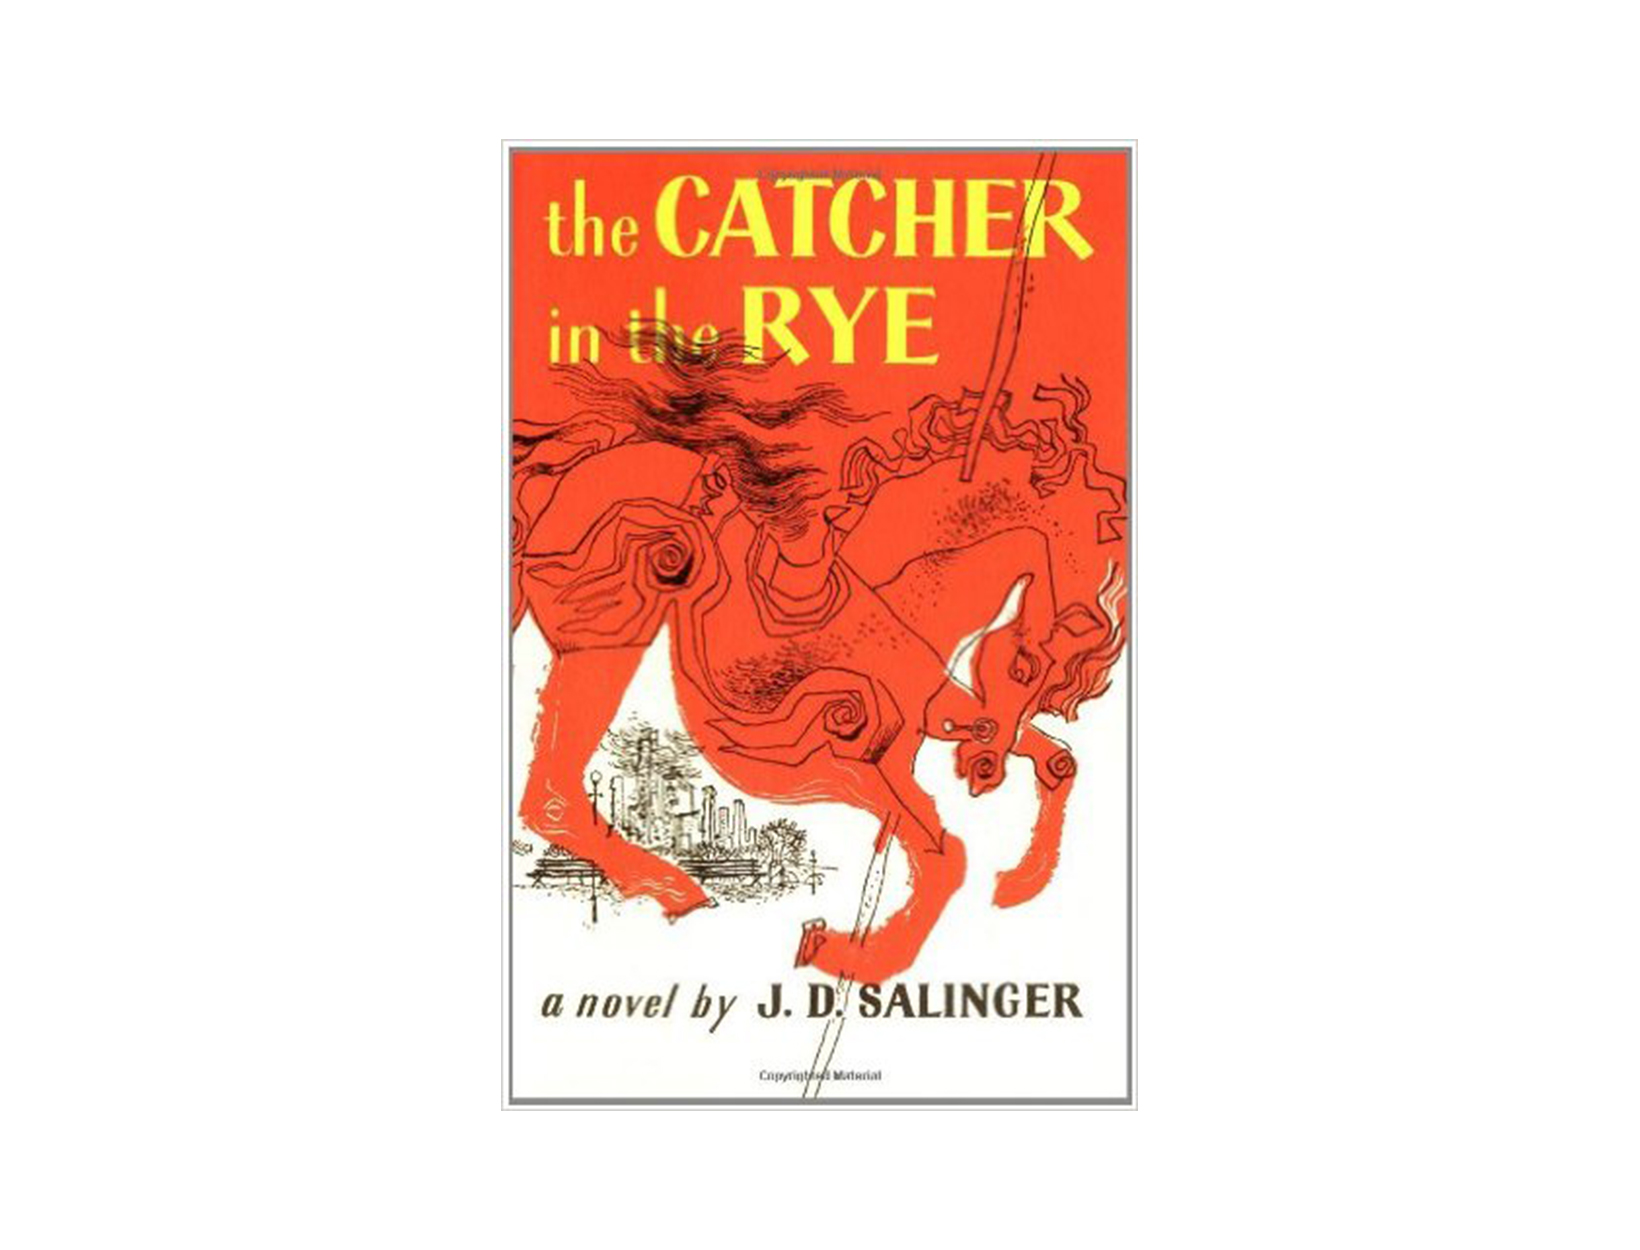 Essays on catcher in the rye themes